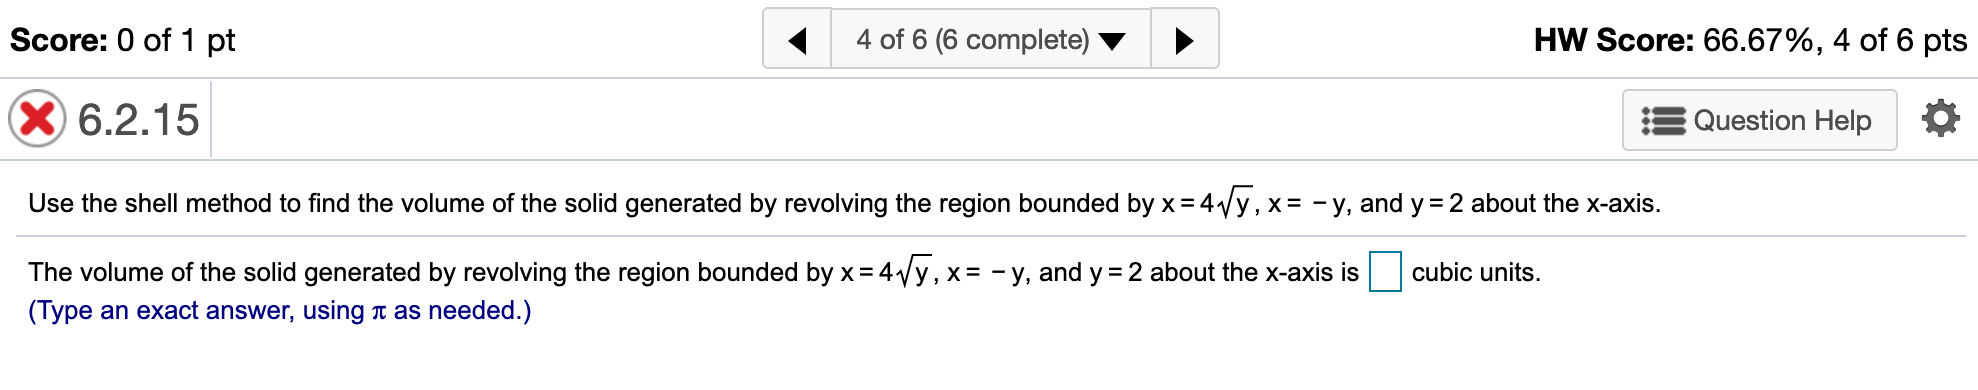 Score: 0 of 1 pt 4 of 6 (6 complete) HW Score: 66.67%, 4 of 6 pts X6.2.15 Question Help Use the shell method to find the volume of the solid generated by revolving the region bounded by x 4y, x = -y, and y 2 about the x-axis. The volume of the solid generated by revolving the region bounded by x 4Vy, x= - y, and y cubic units 2 about the x-axis is (Type an exact answer, using t as needed.)